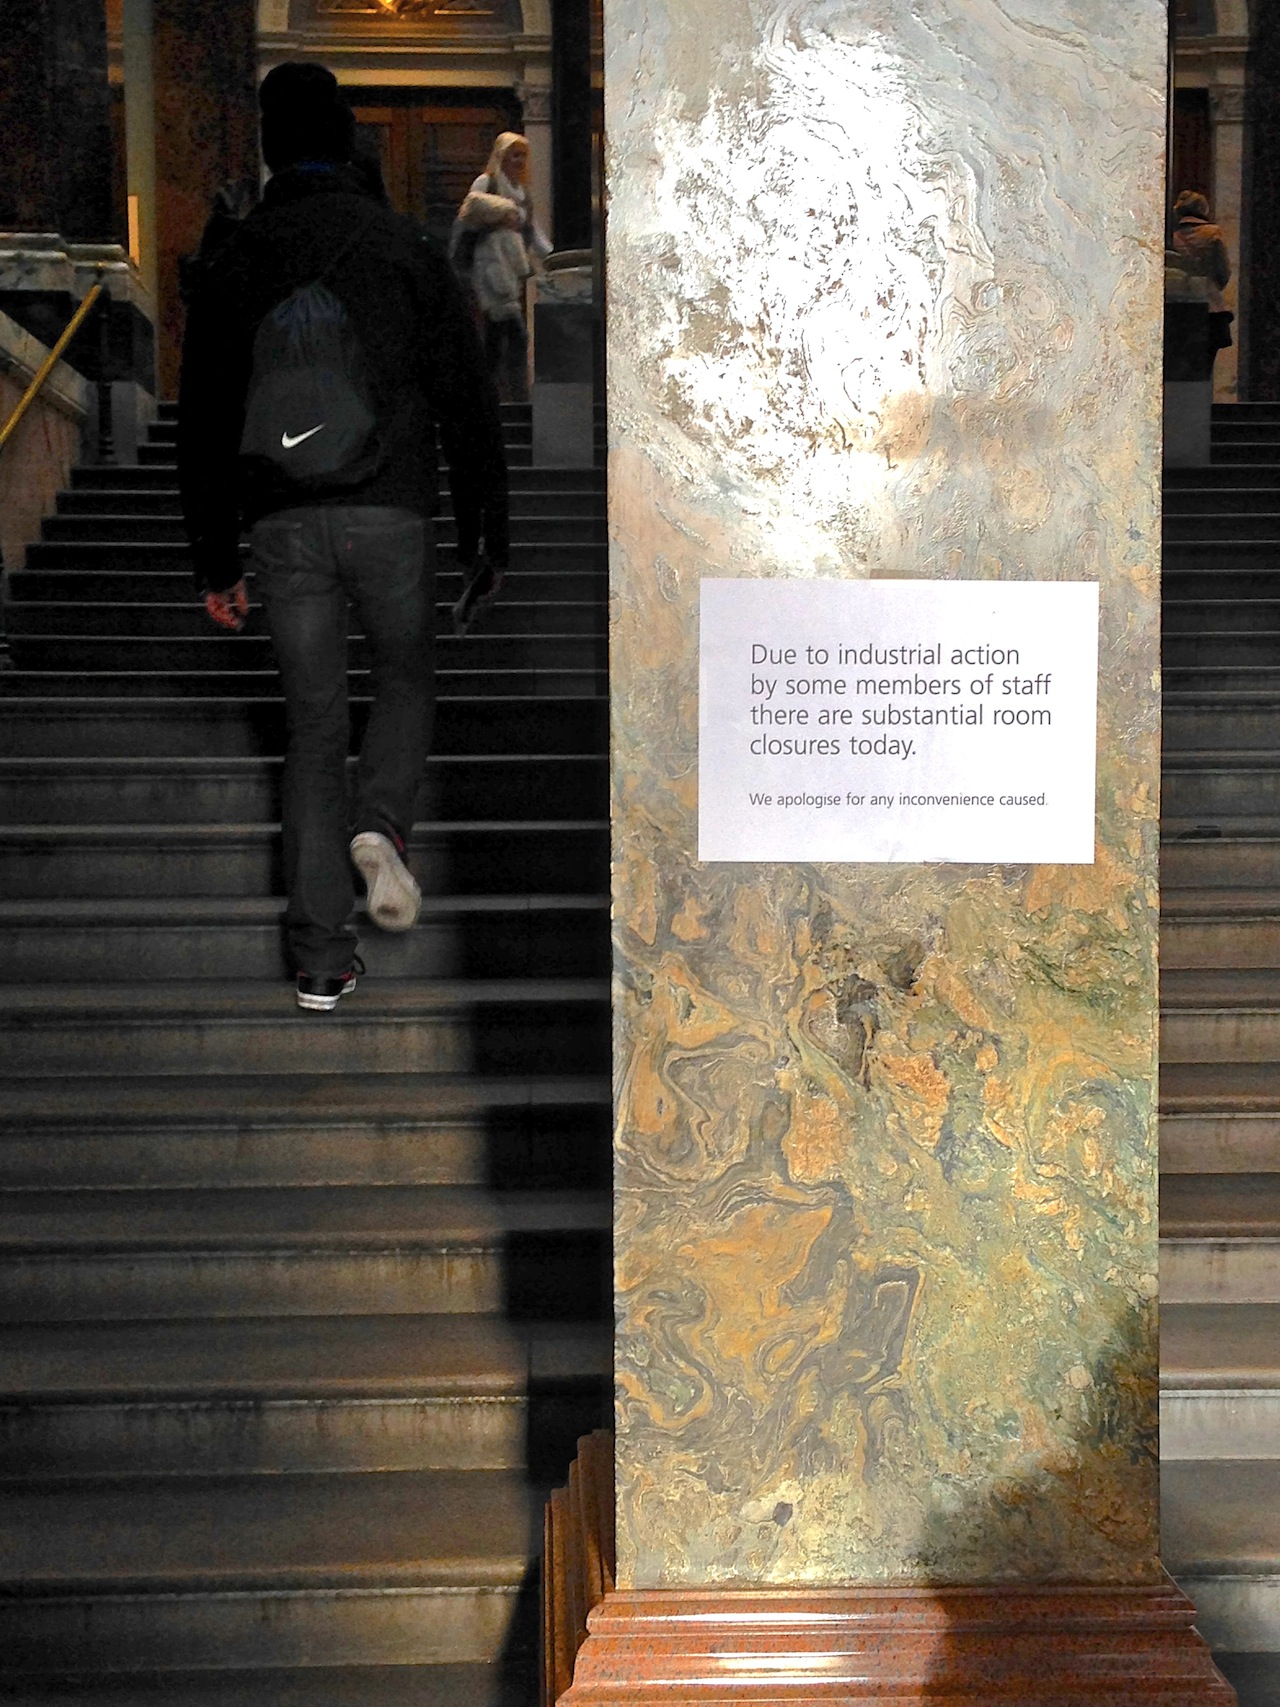 Sign inside the National Gallery (click to enlarge)